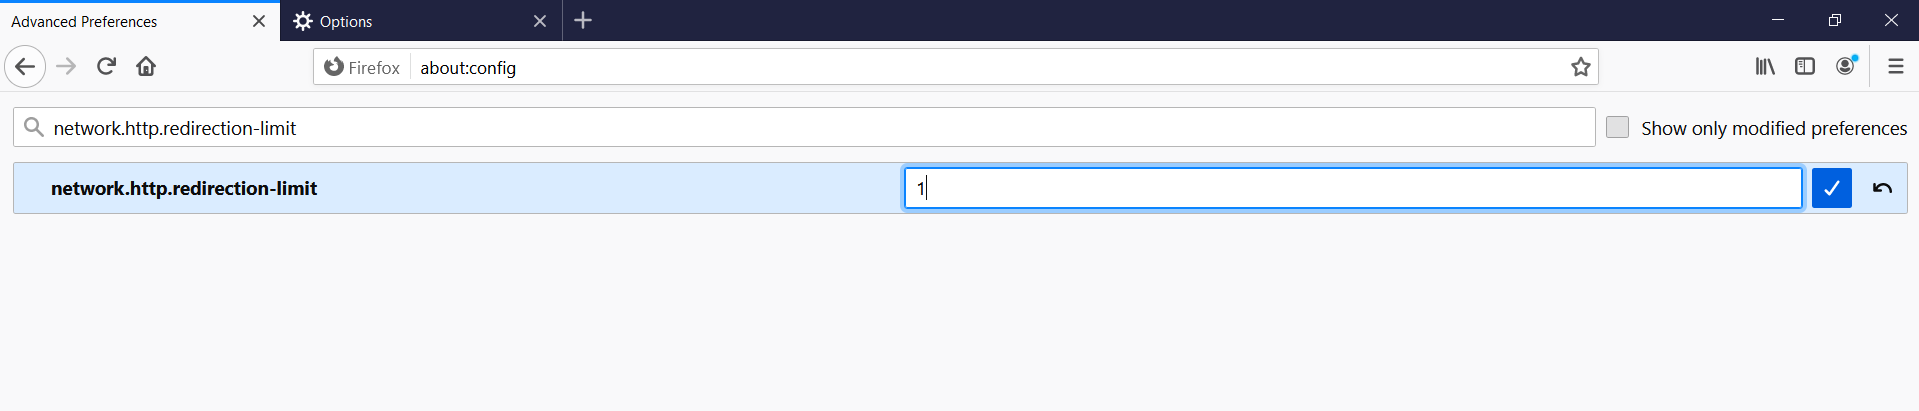 Firefox setting redirection limit to 1